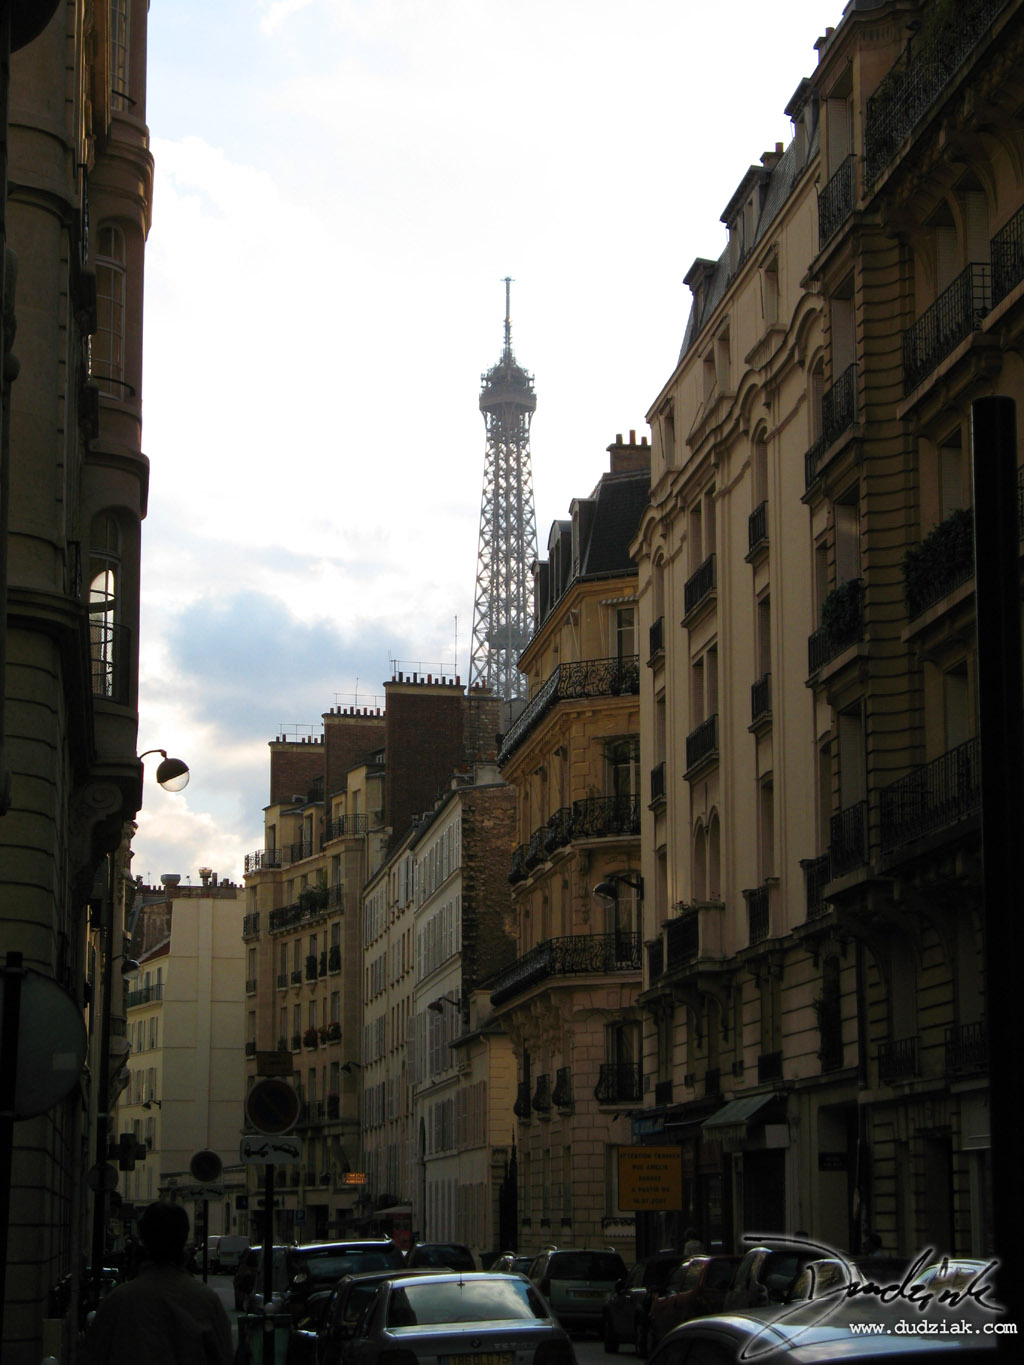 eiffel tower,  french architecture,  buildings,  streets,  Paris